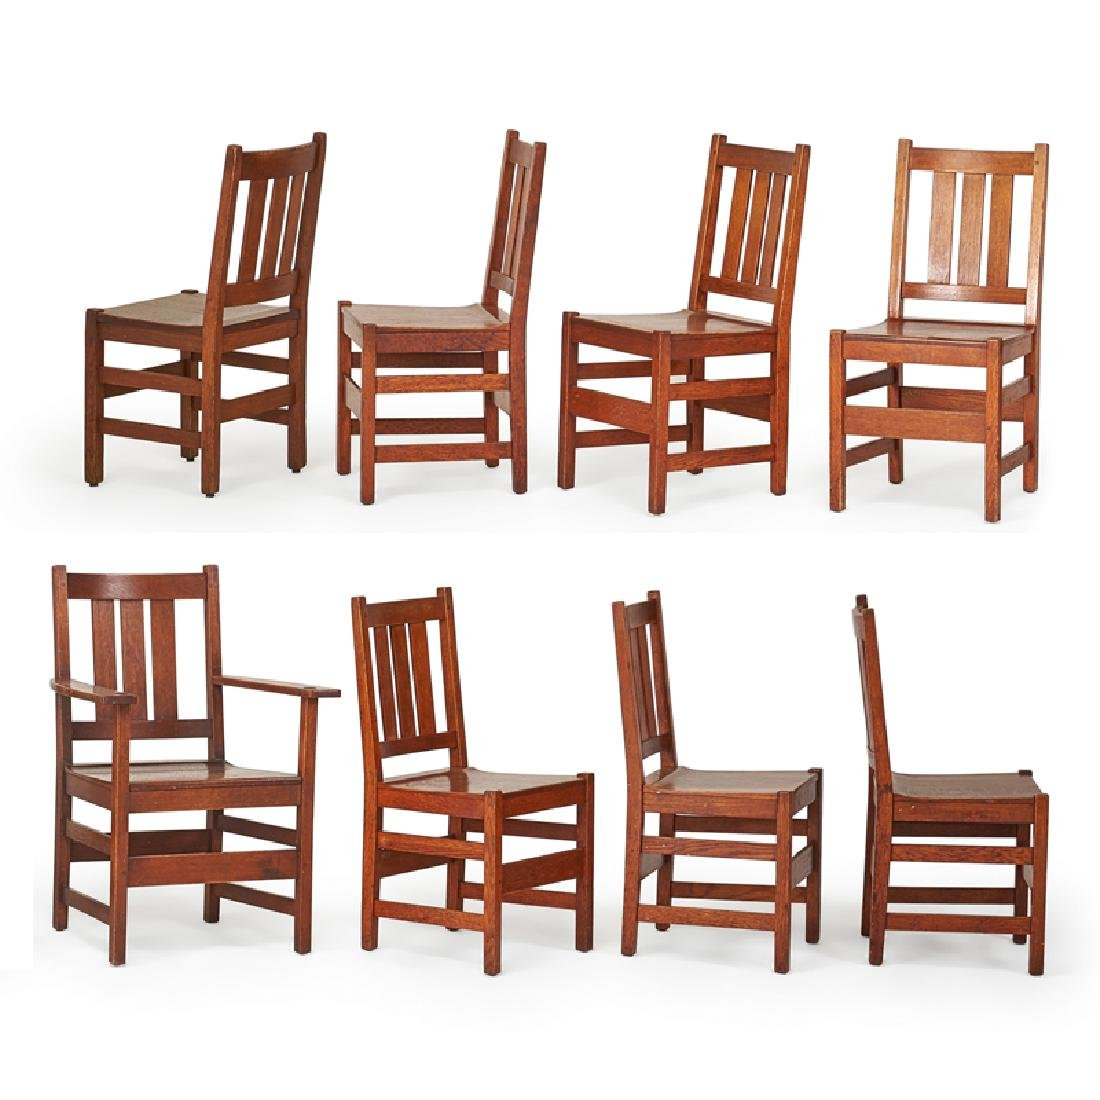 L. & J.G. STICKLEY Set of eight dining chairs